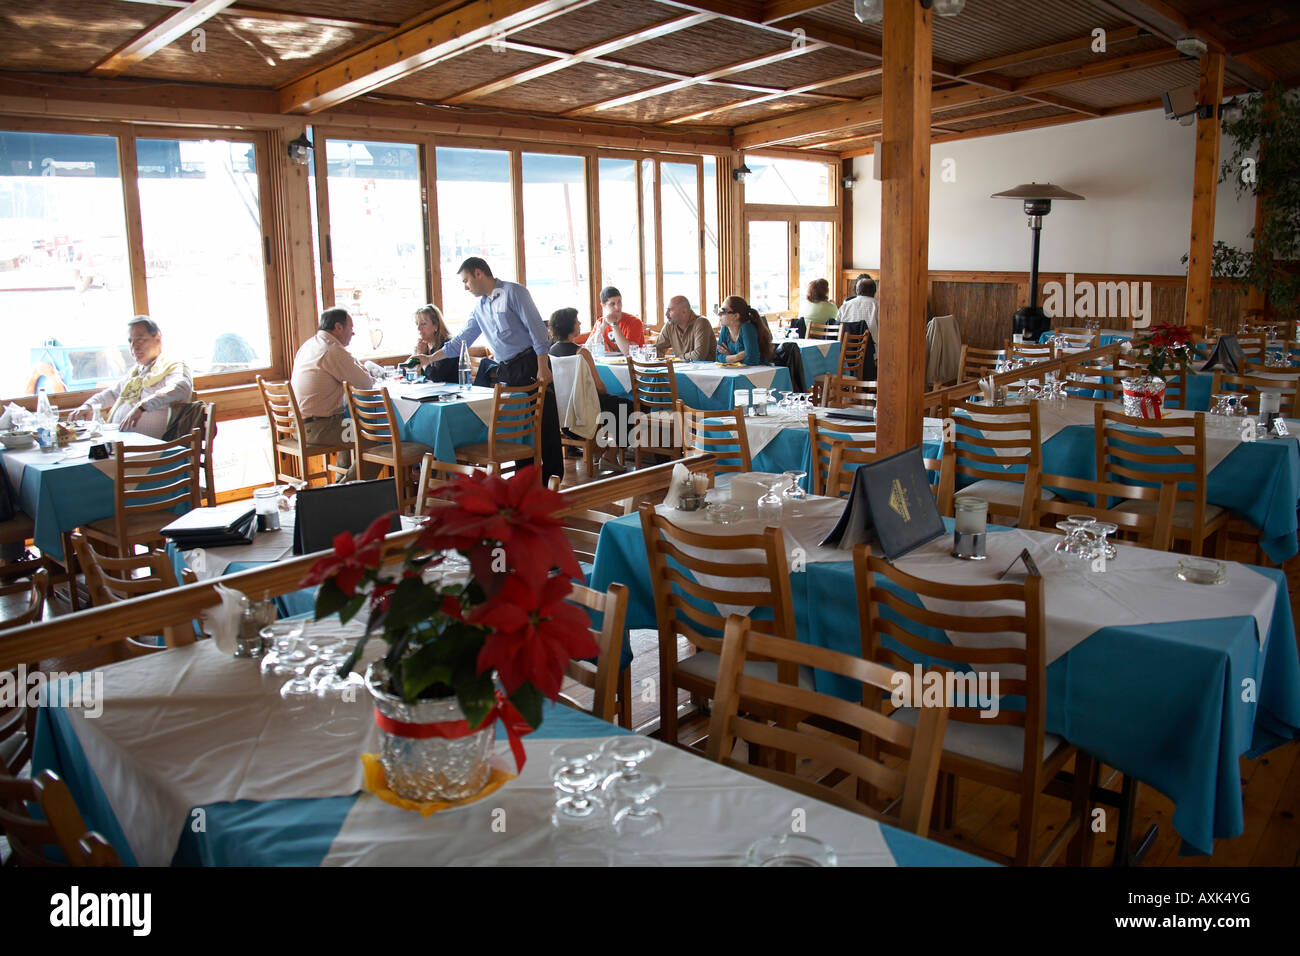 Busy Restaurant Interior